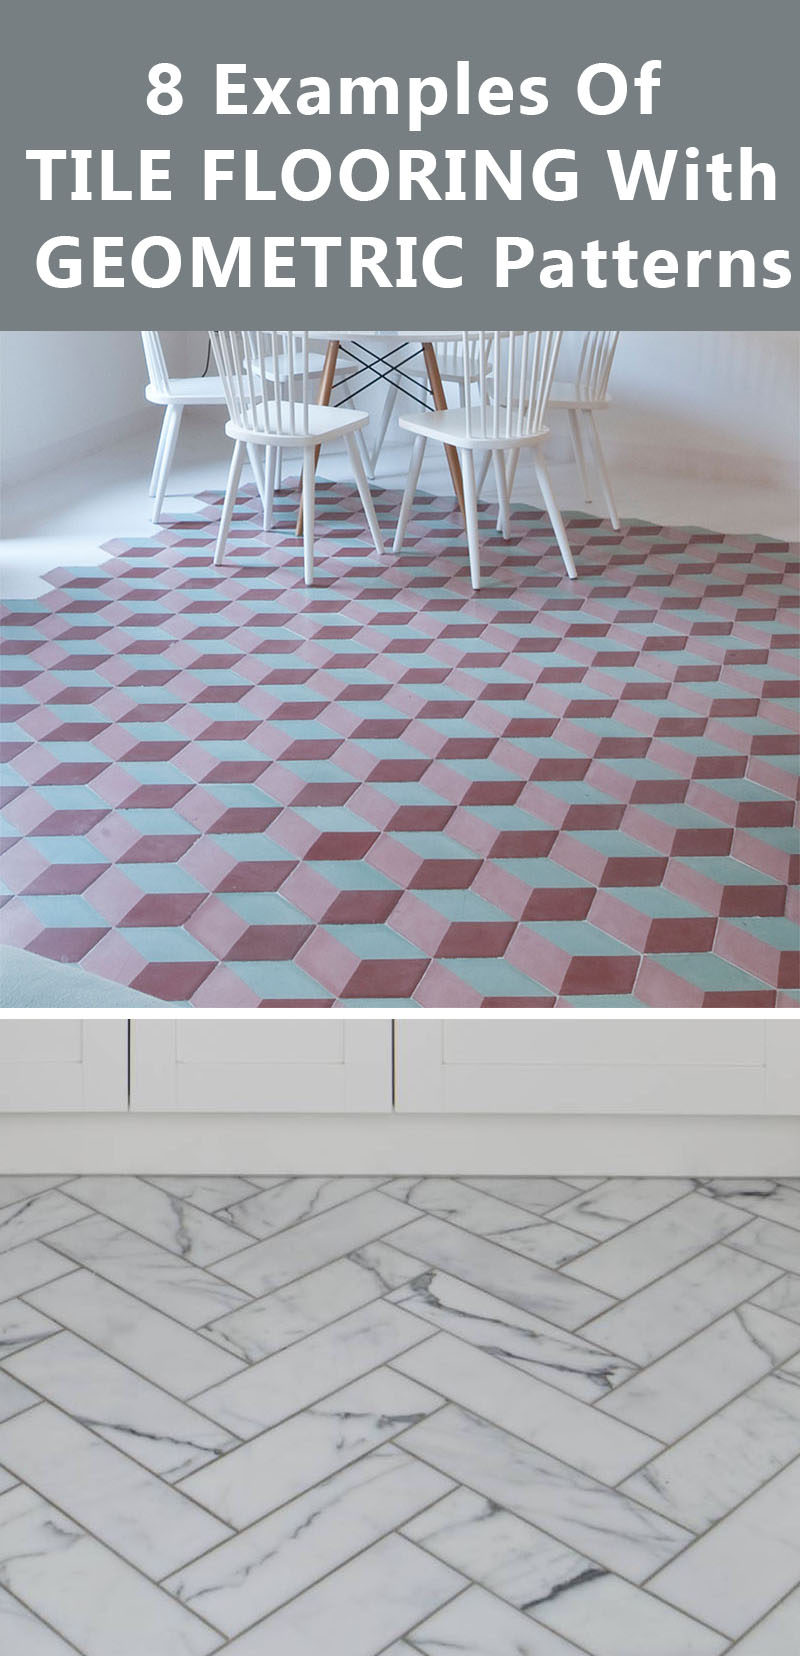 8 Examples Of Tile Flooring With Geometric Patterns